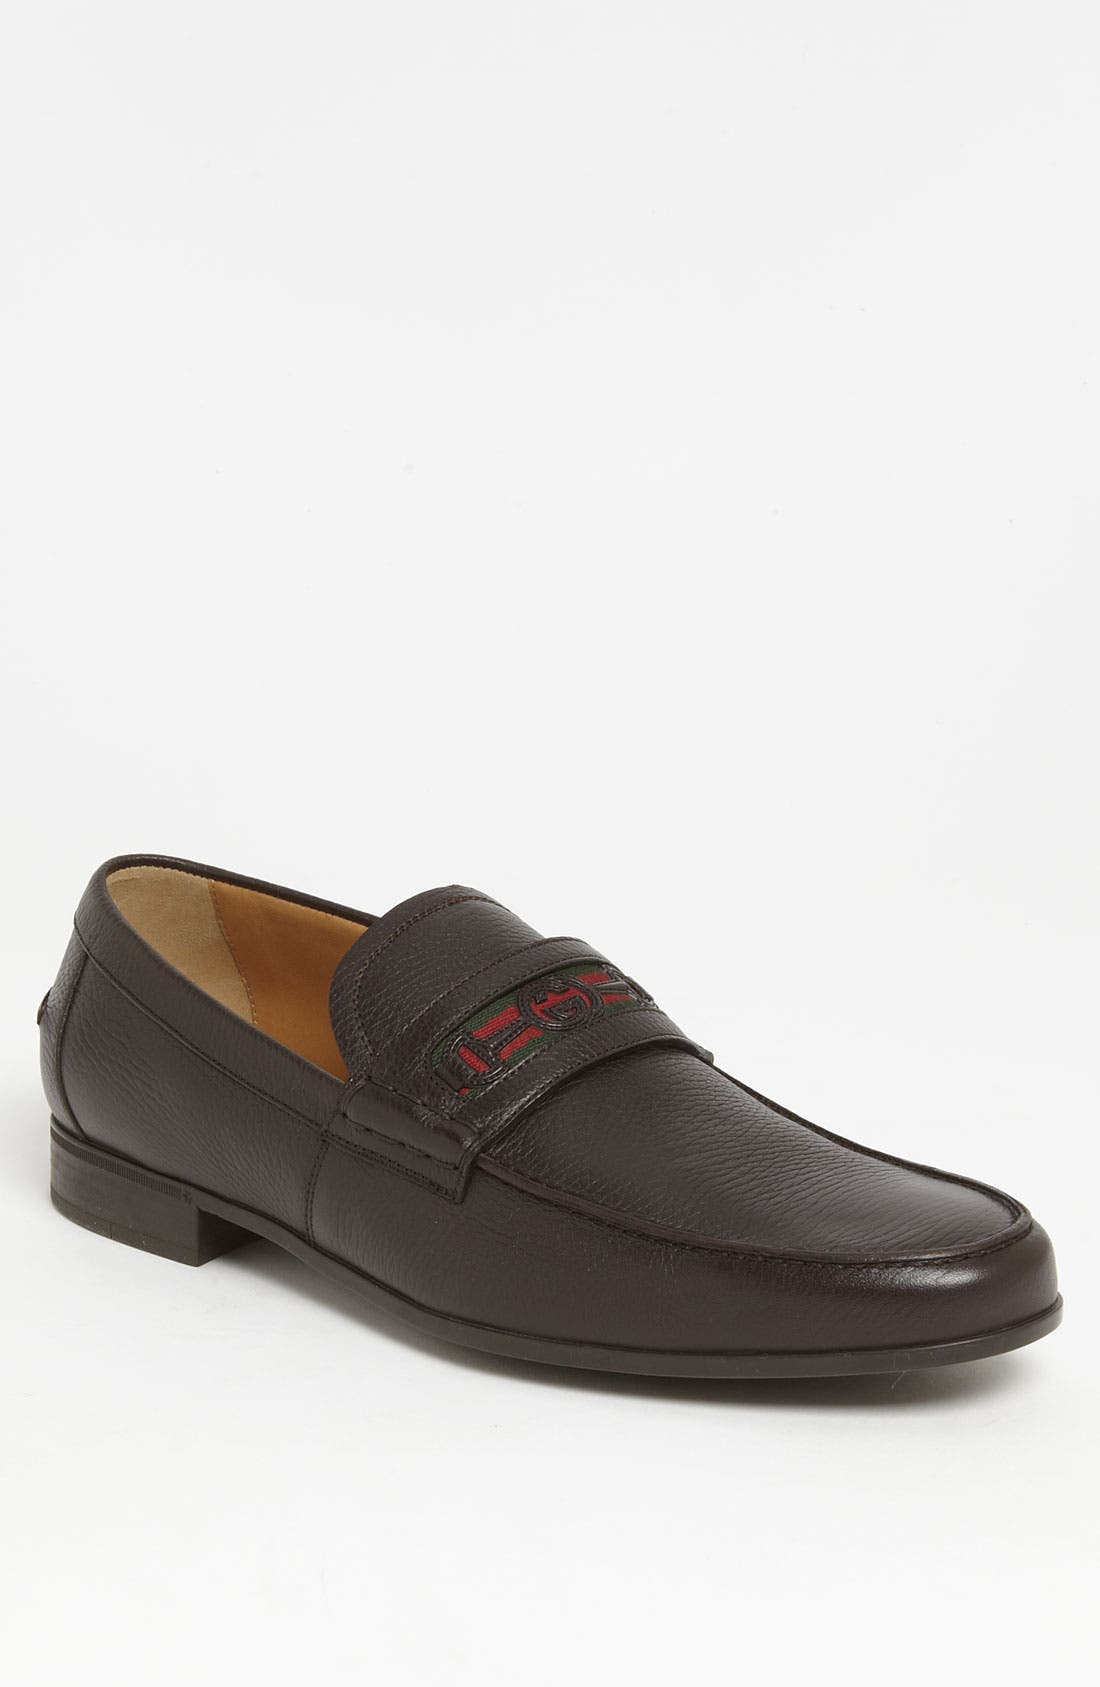 Alternate Image 1 Selected - Gucci 'Goudin' Loafer